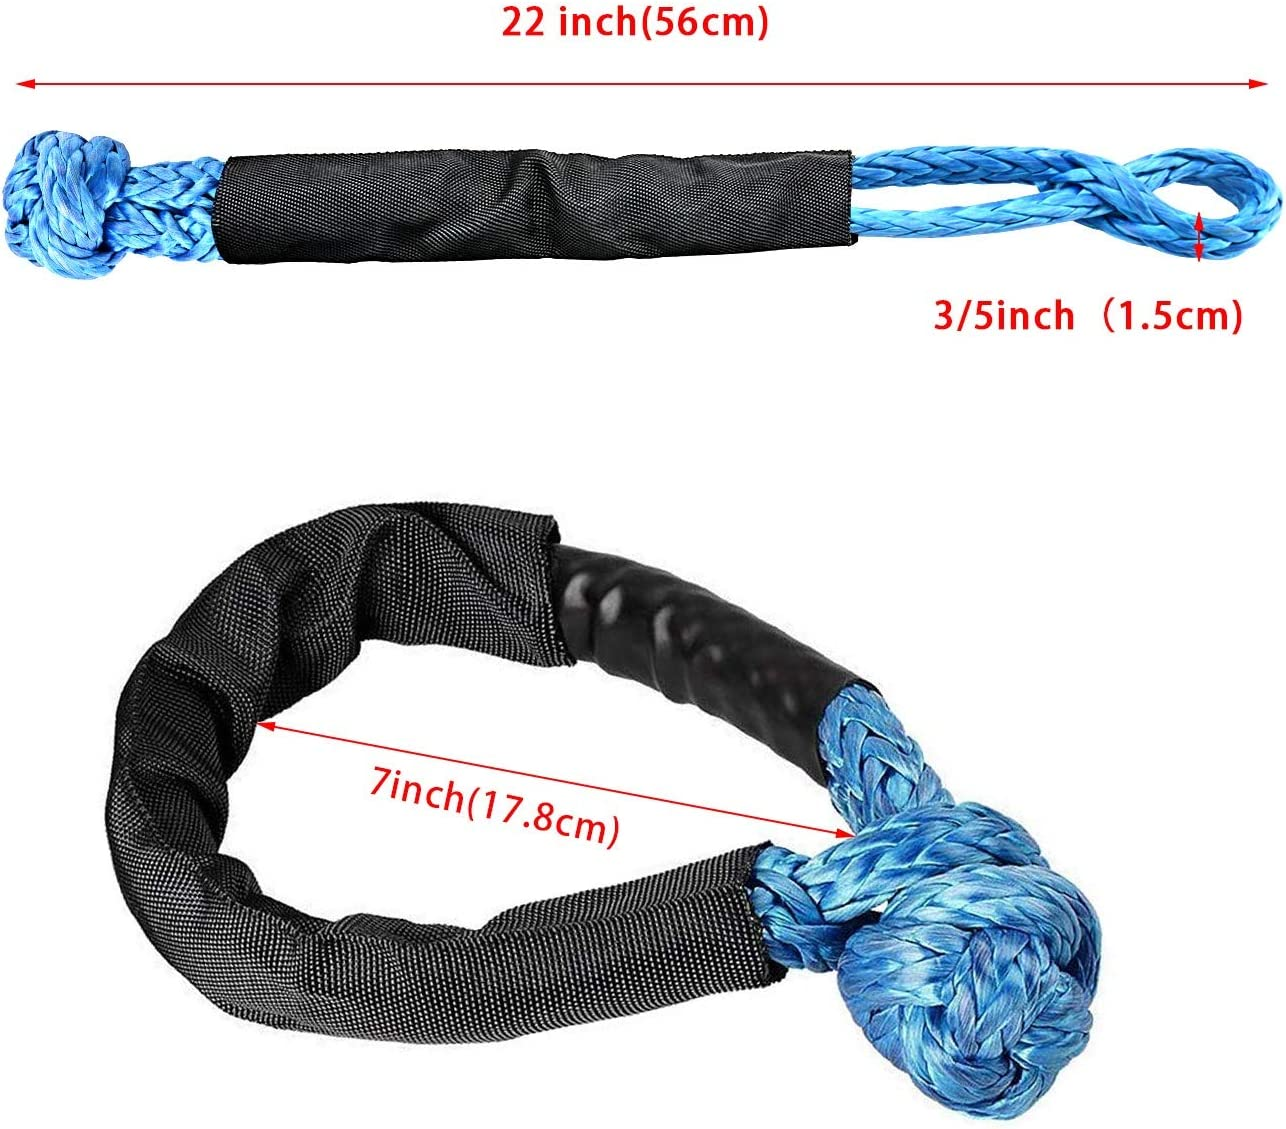 Blue Shackle Recovery Rope with Protective Sleeve for ATV Truck Towing SUV 4X4 Red, 2 Pack Keeboot Synthetic Soft Shackle Blue Rope 1//2 Inch X 22 Inch 38,000lbs Breaking Strength /…